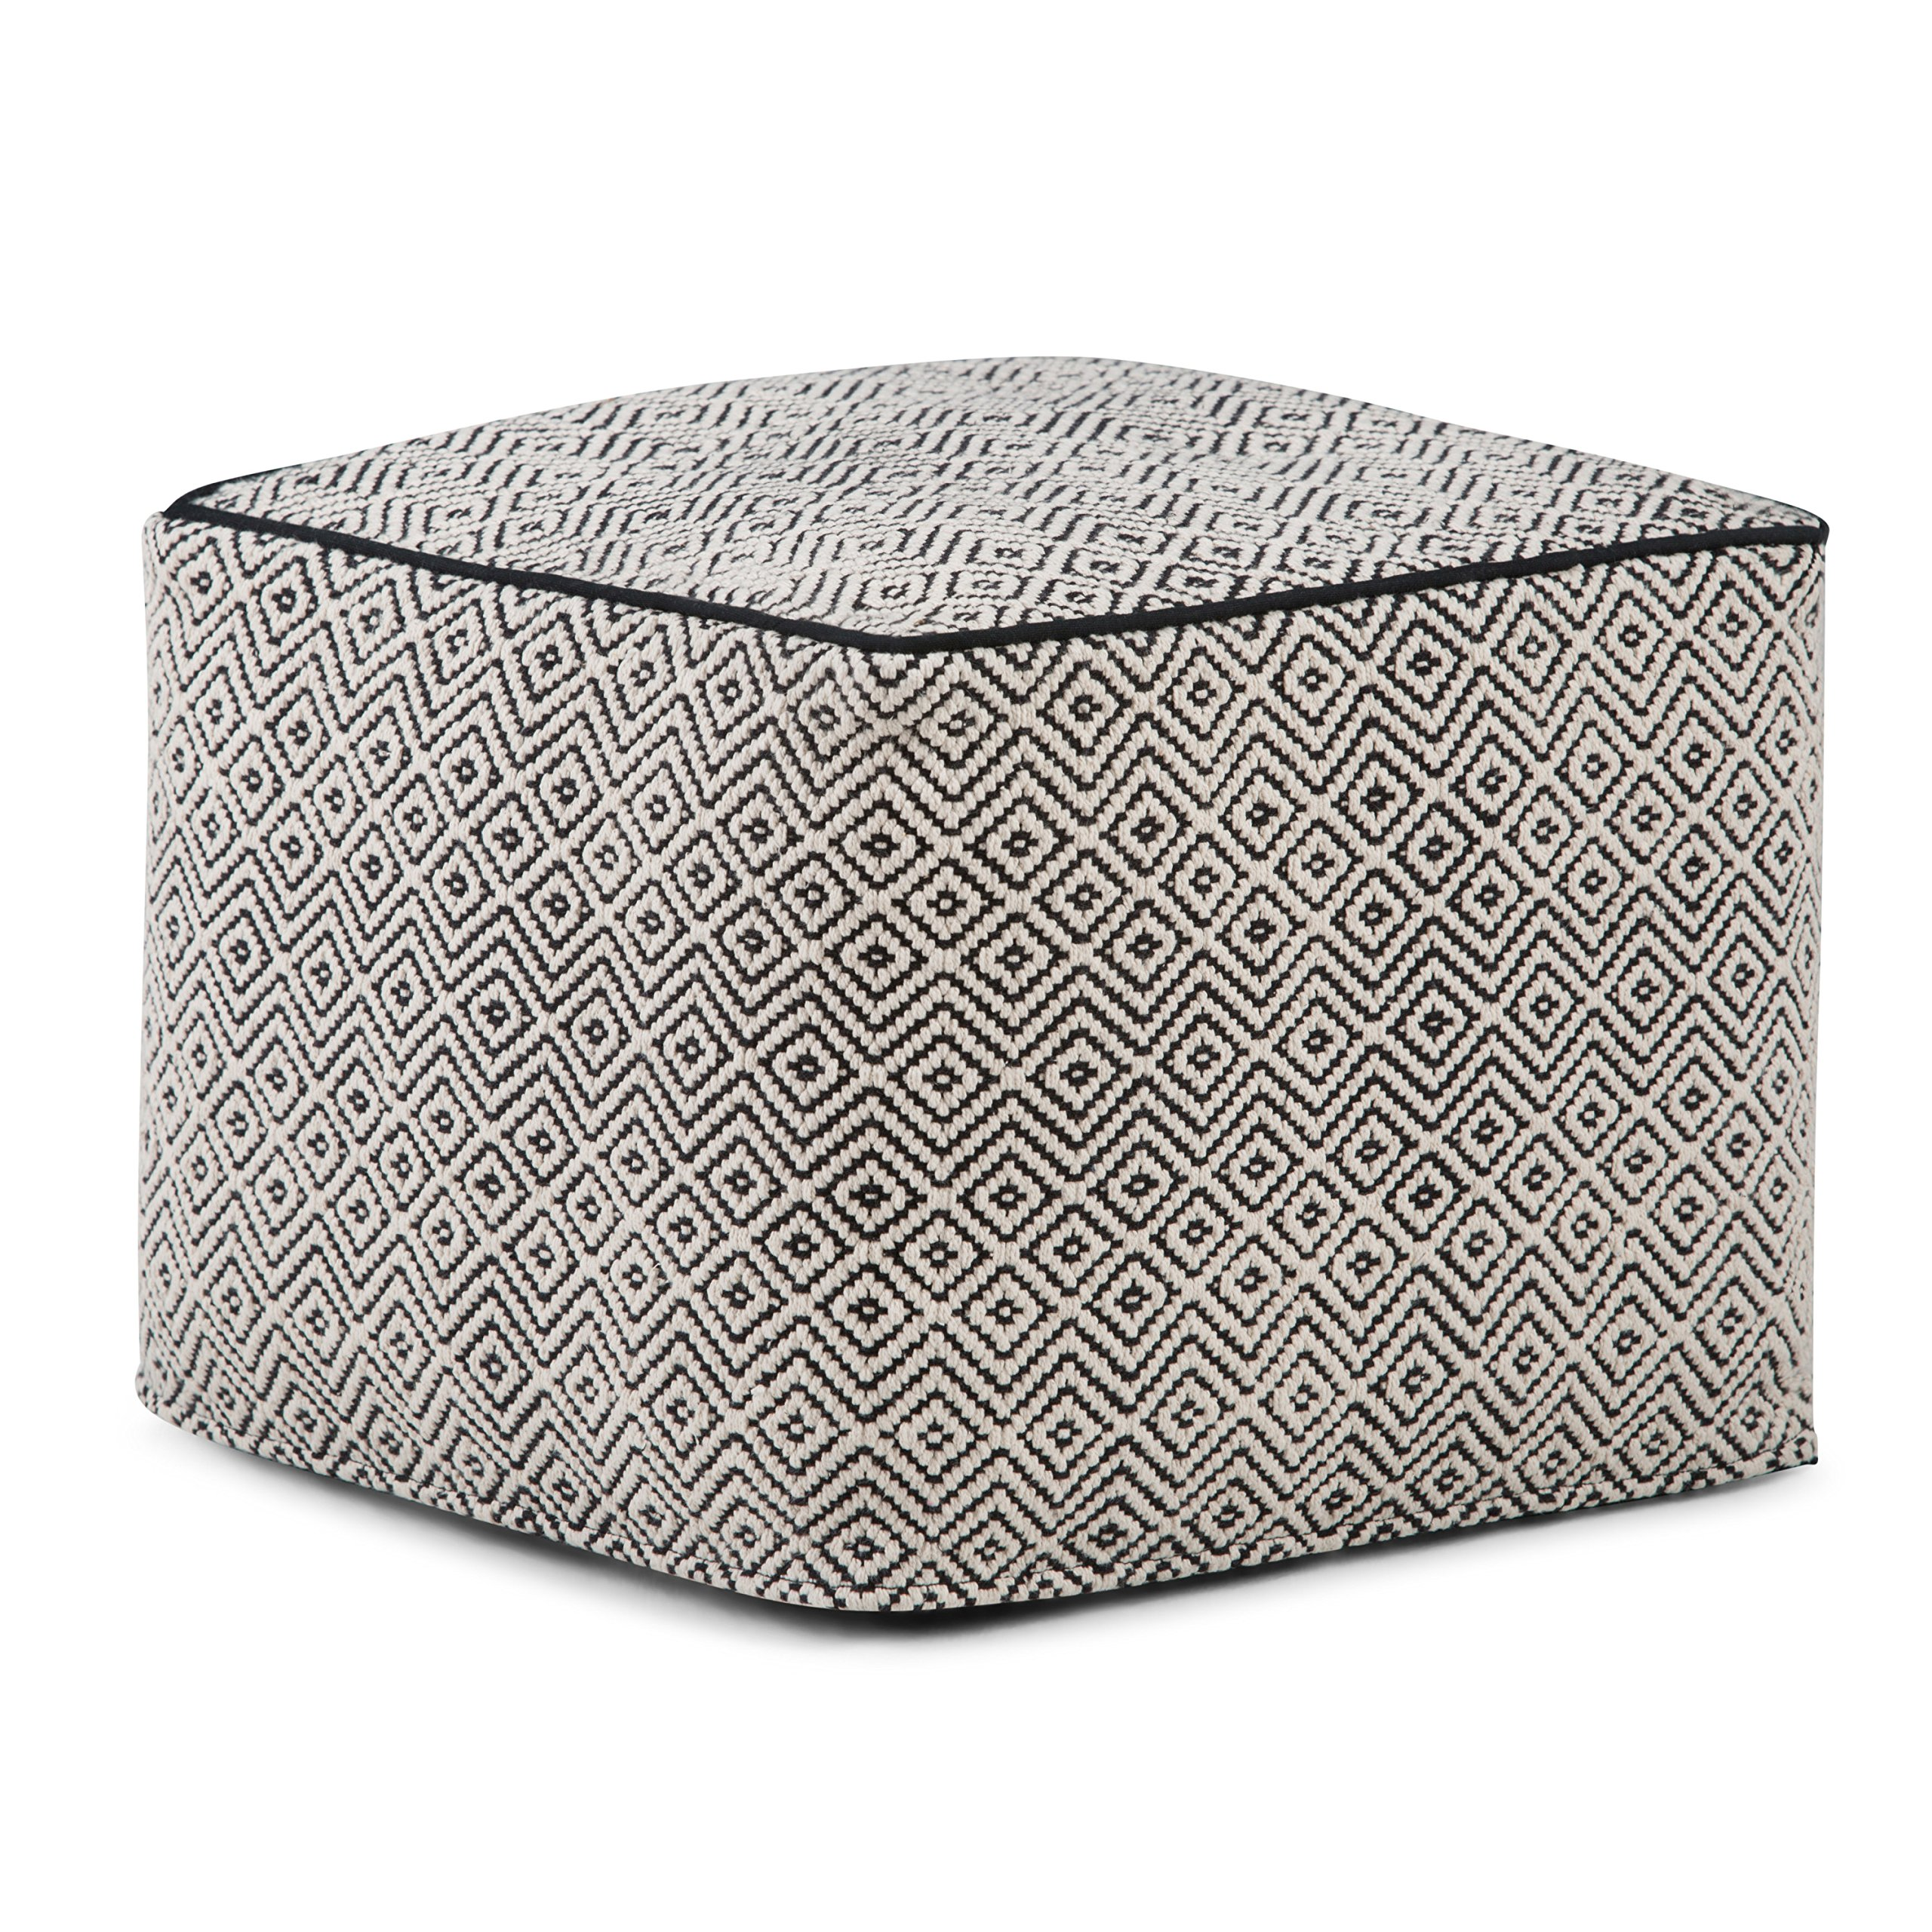 Simpli Home Brynn Square Pouf, Patterned Black and Grey